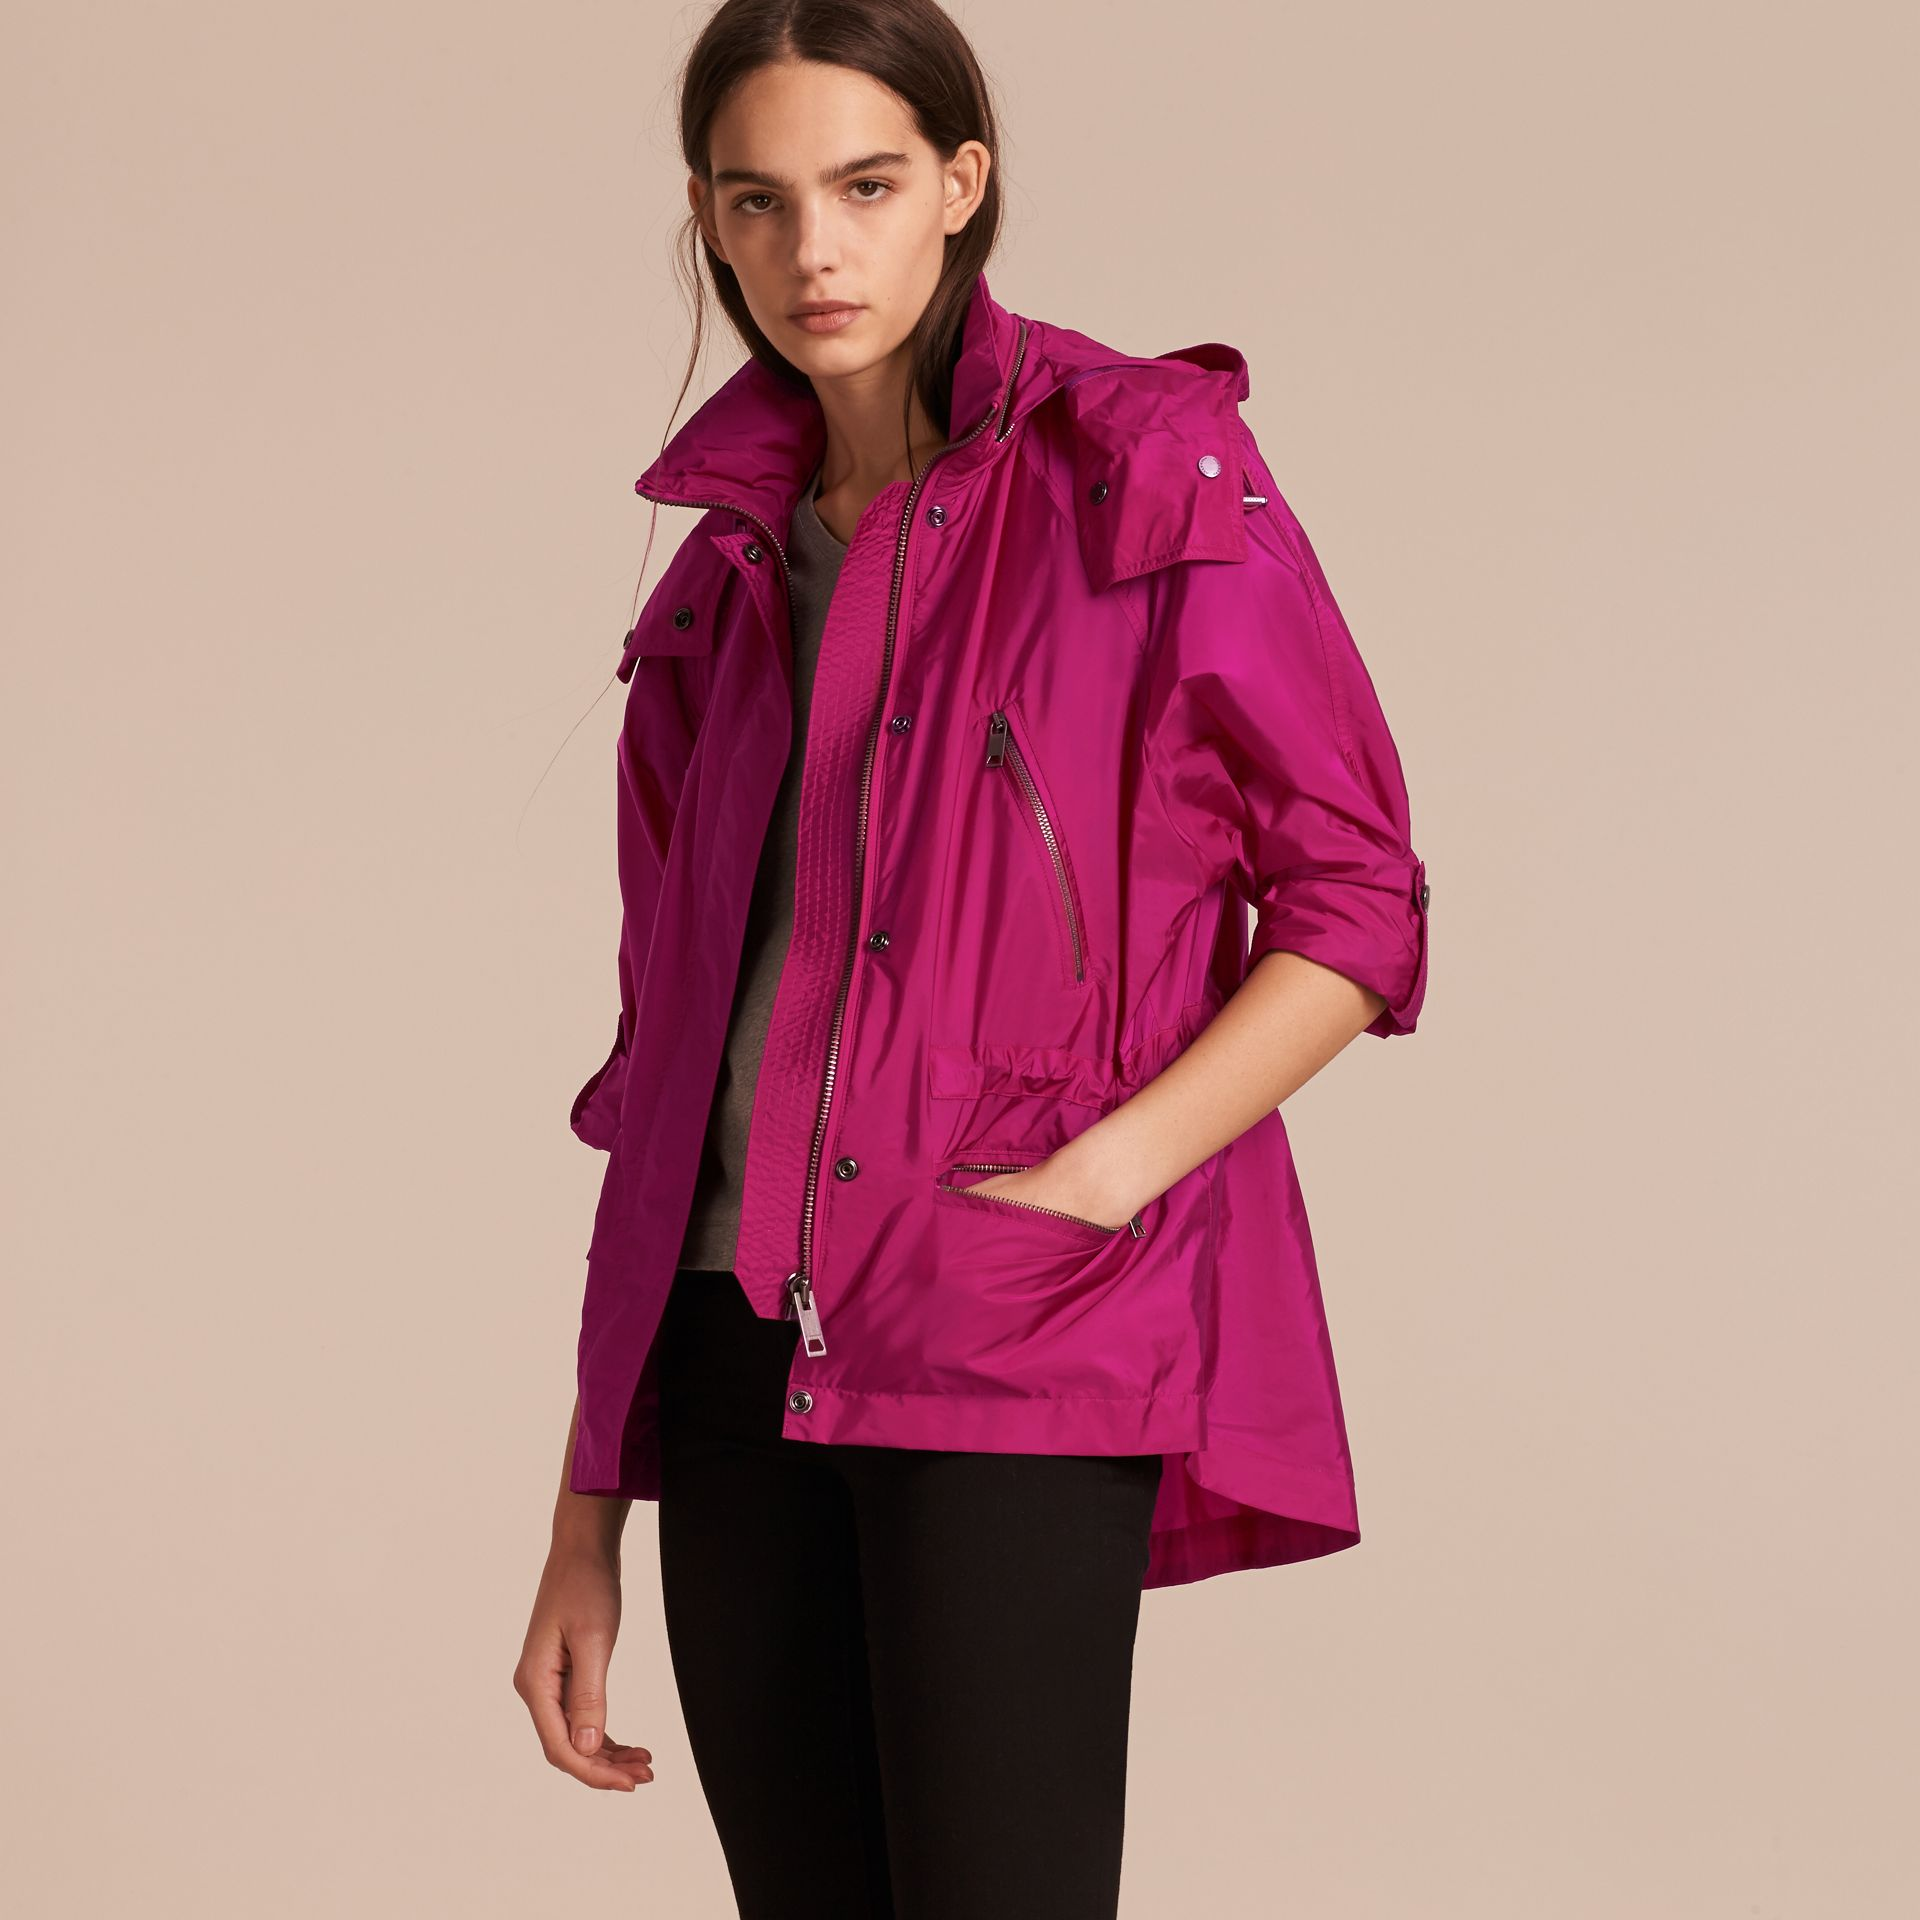 Showerproof Parka Jacket with Packaway Hood in Fuchsia - gallery image 7